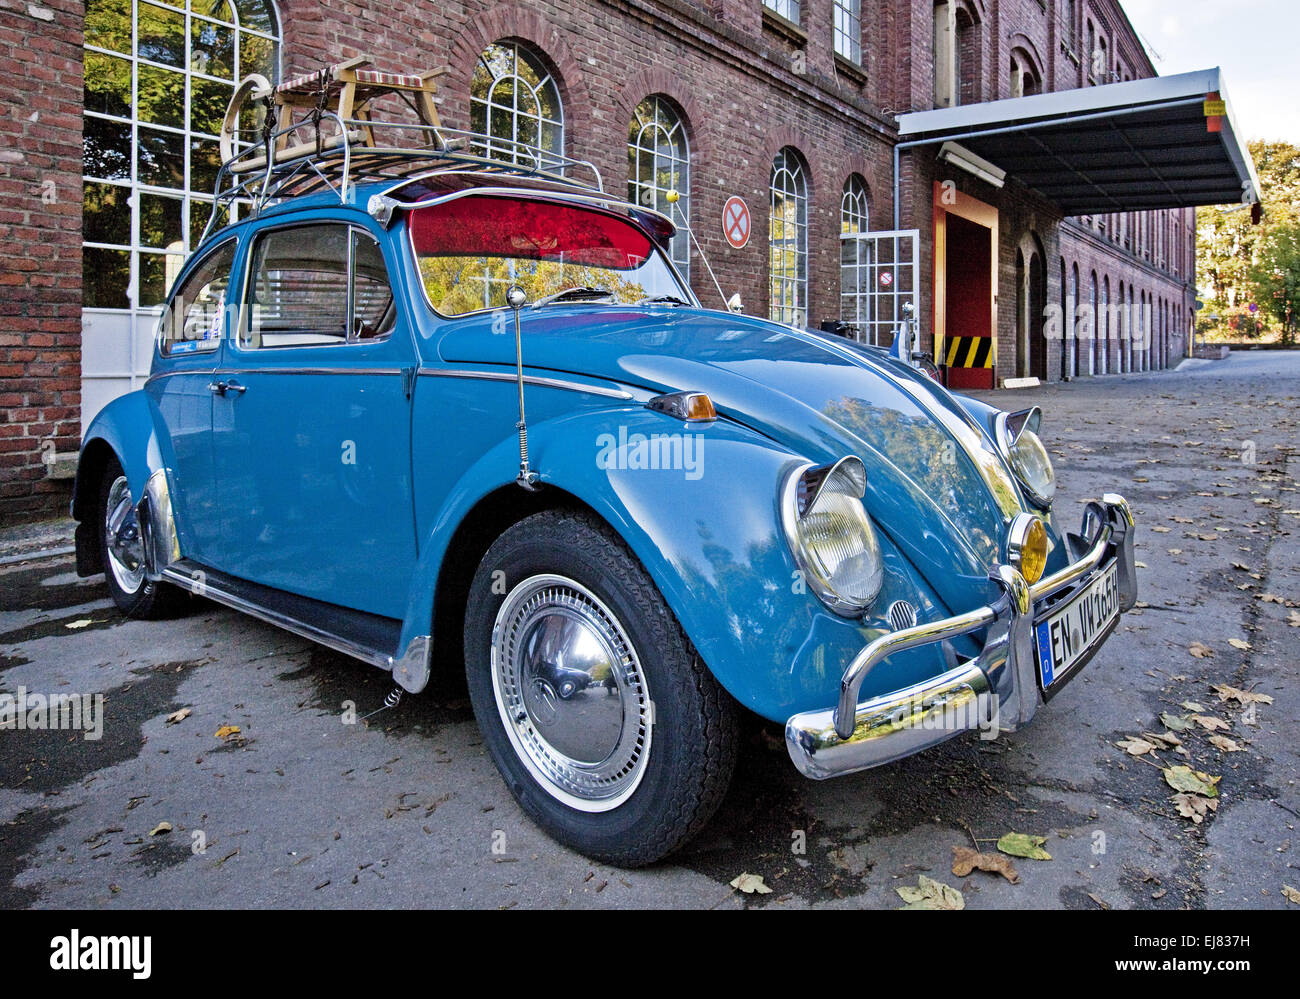 Classic car Volkswagen, Allemagne Photo Stock